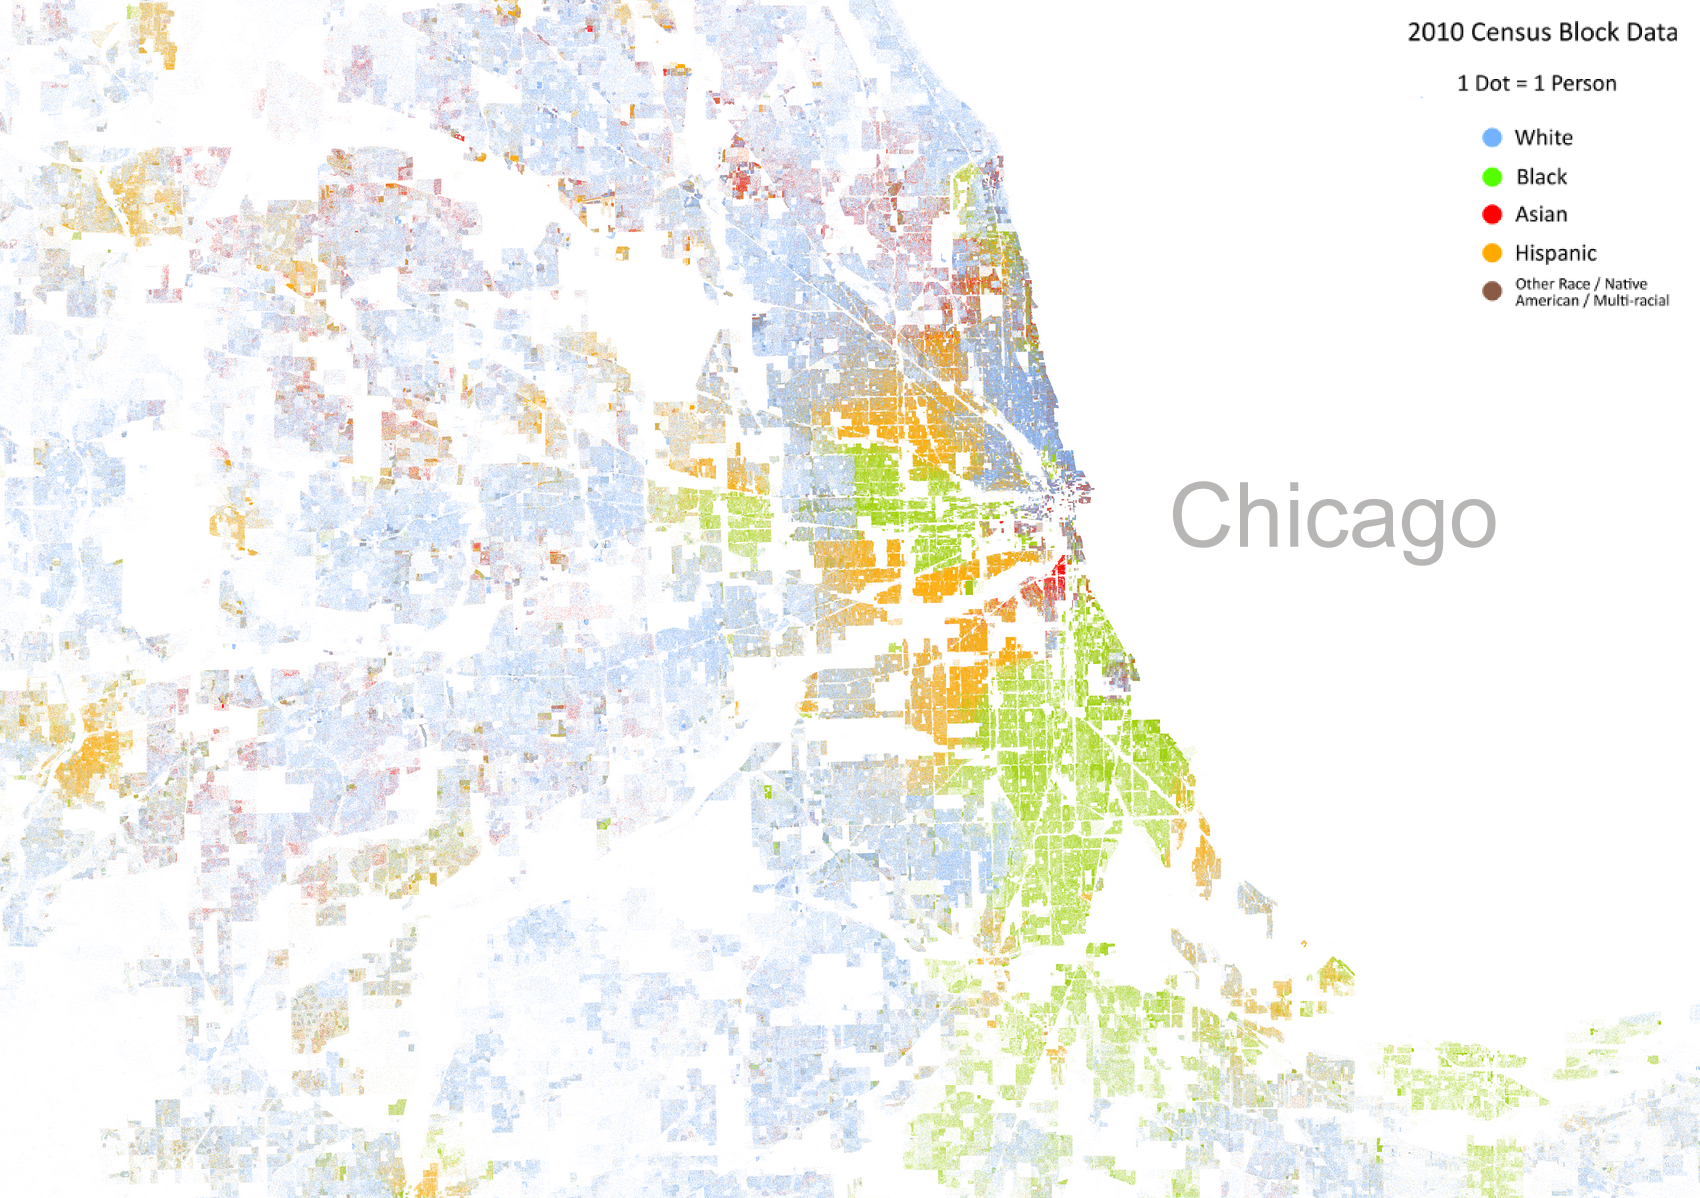 The Most Diverse Cities Are Often The Most Segregated FiveThirtyEight